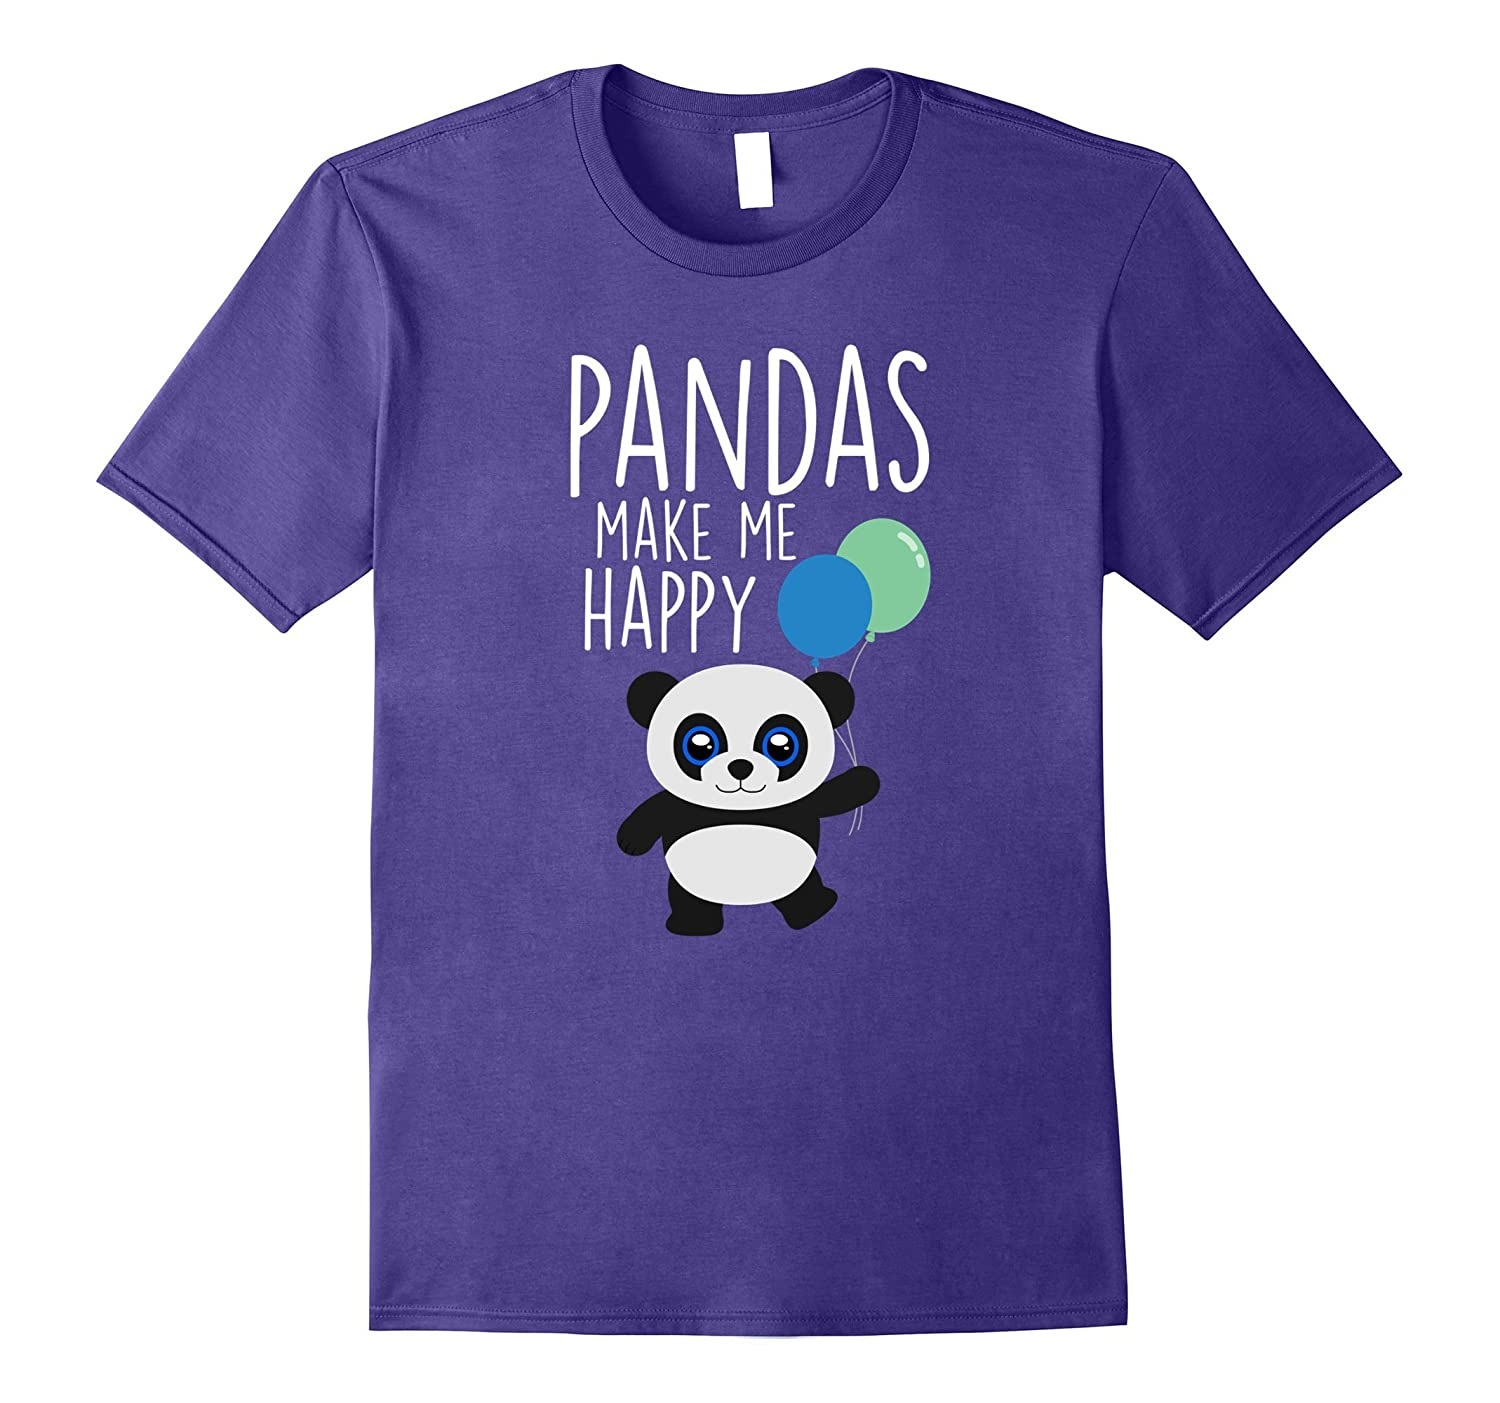 Pandas Make Me Happy T-Shirt Girls Boys Gift Tee-Rose